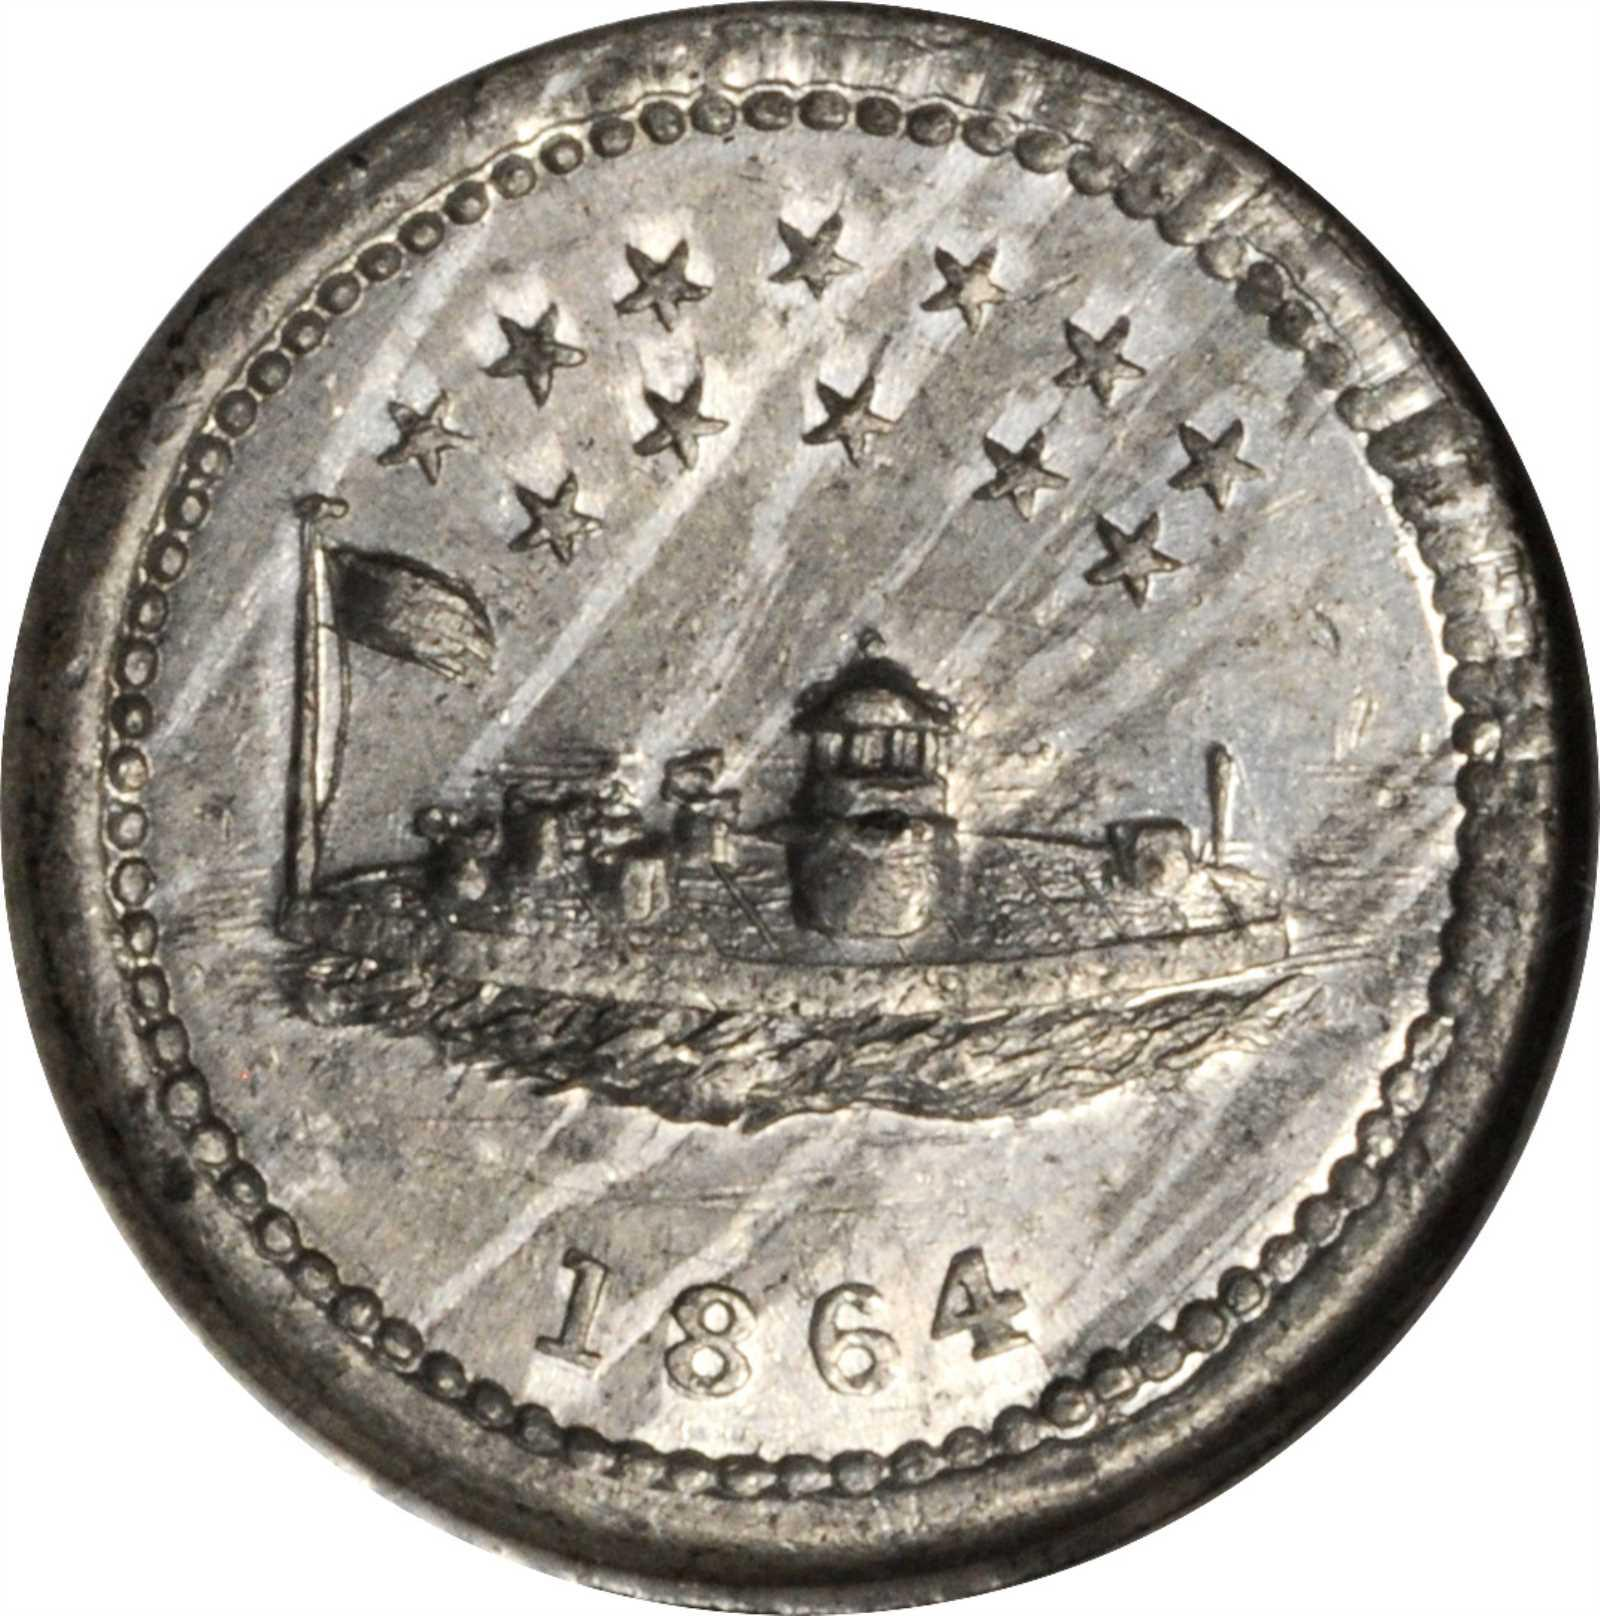 1864 Monitor / OUR NAVY. Fuld-241/336 e. Rarity-8. White Metal. 20 mm. MS-62 (NGC). Image courtesy Stack's Bowers Auctions